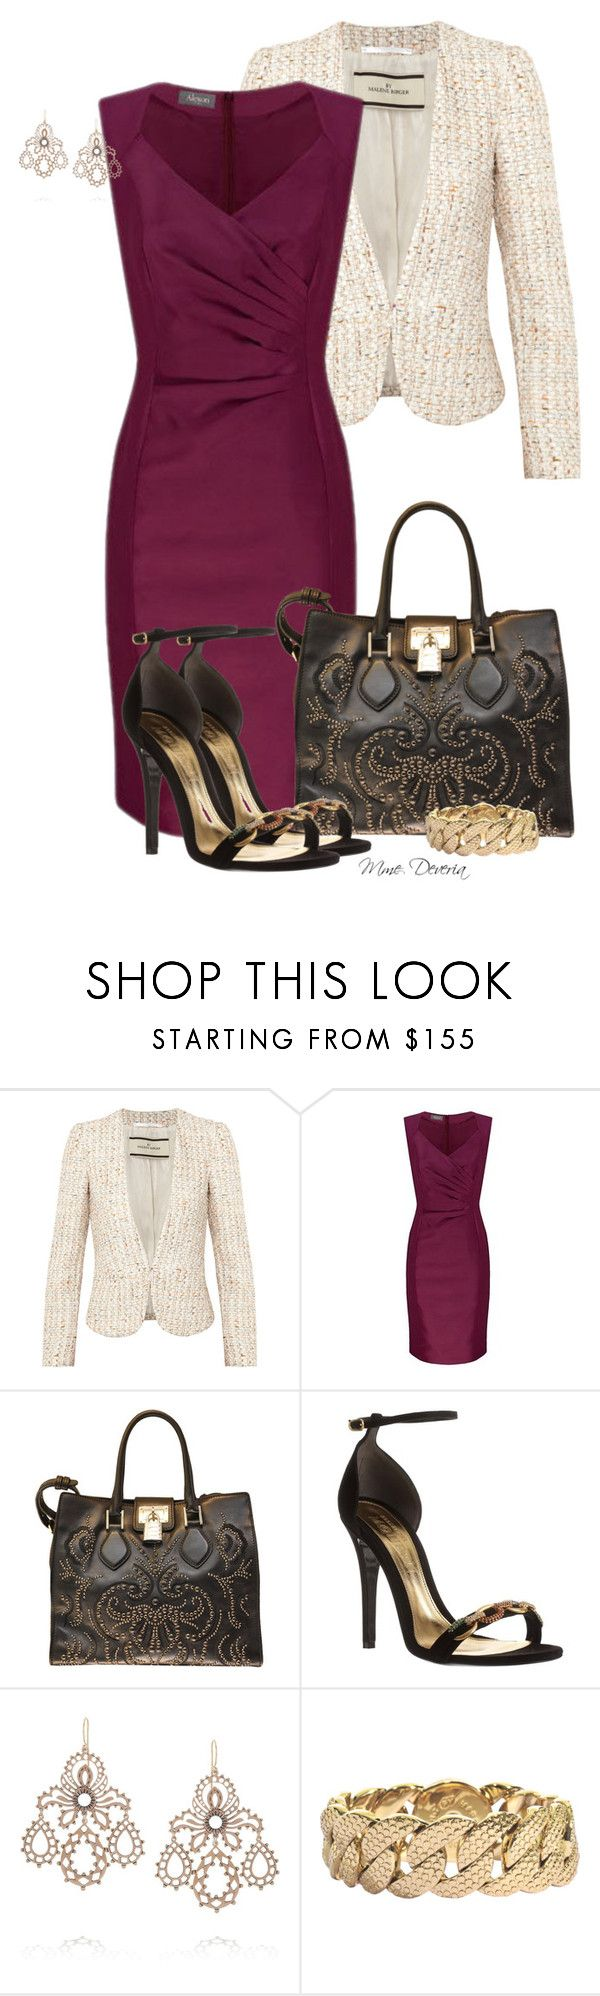 """""""Studs and chains"""" by madamedeveria ❤ liked on Polyvore featuring By Malene Birger, Alexon, Roberto Cavalli, Alexander McQueen, Laurent Gandini and Marc by Marc Jacobs"""